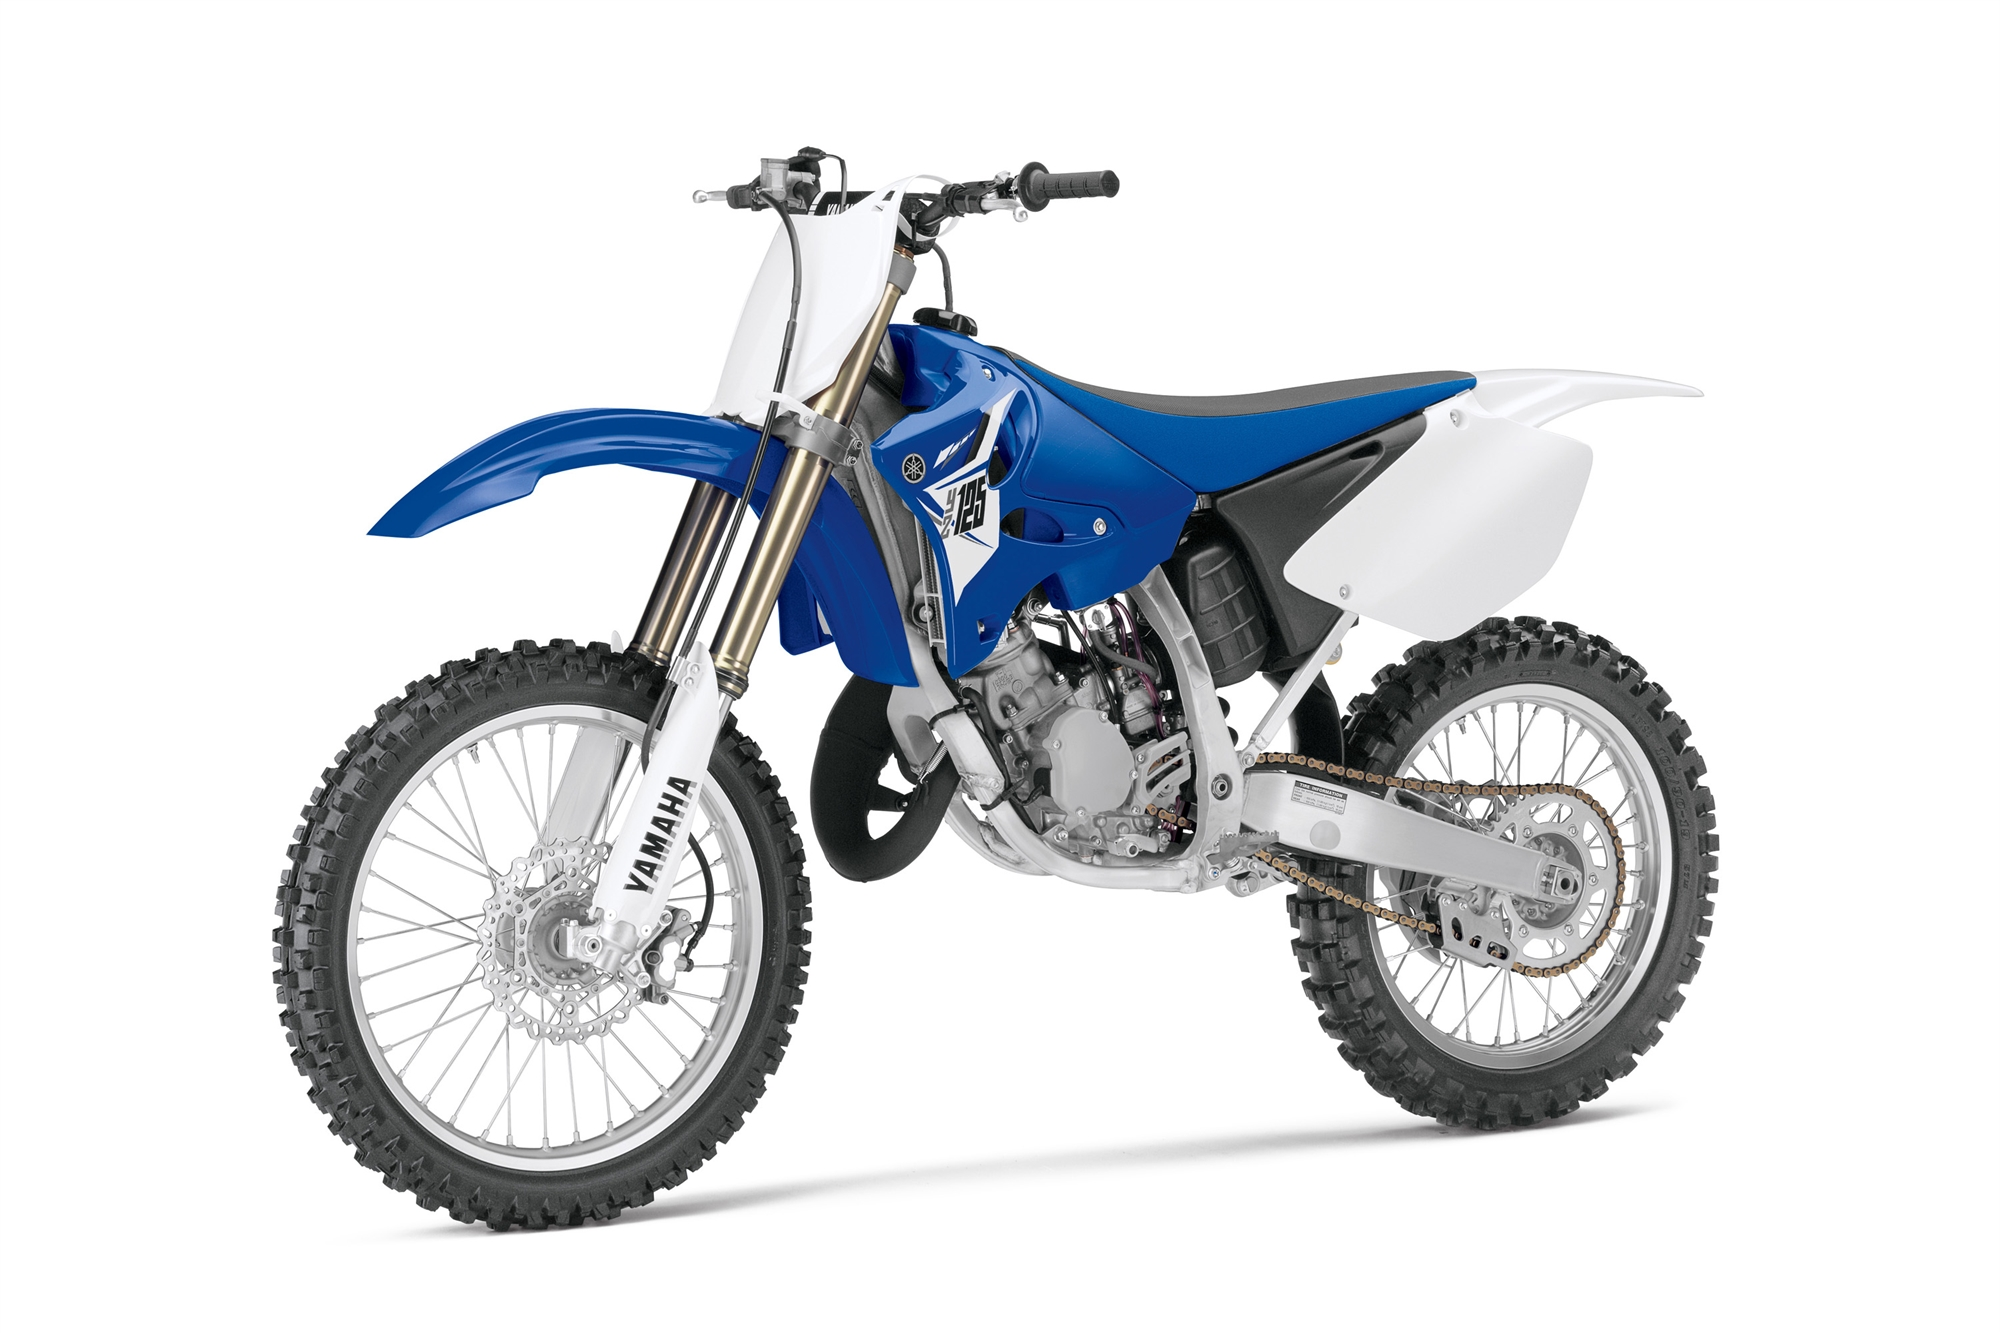 yamaha yz125 specs 2013 2014 autoevolution. Black Bedroom Furniture Sets. Home Design Ideas